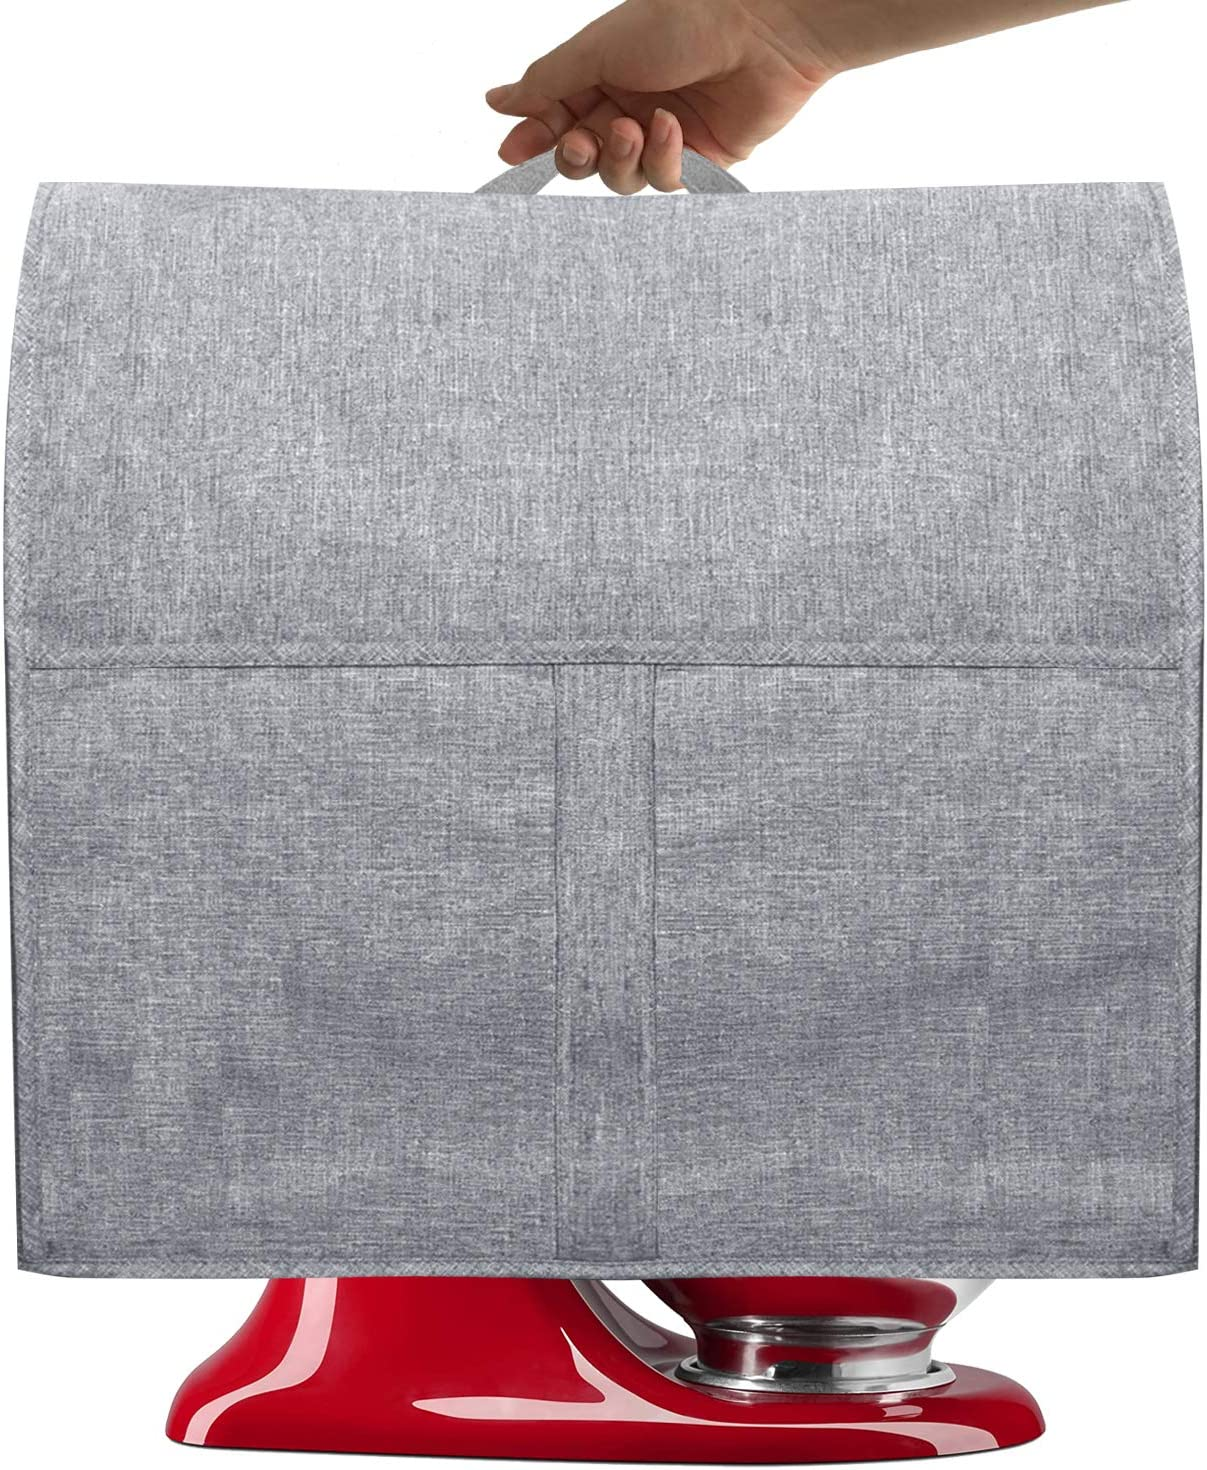 Dust Cover with 4.5-5 Quart Mixers, Cloth Cover with Pockets for Mixers and Extra Accessories (Fits for 4.5-Quart and All 5-Quart, Grayish White)